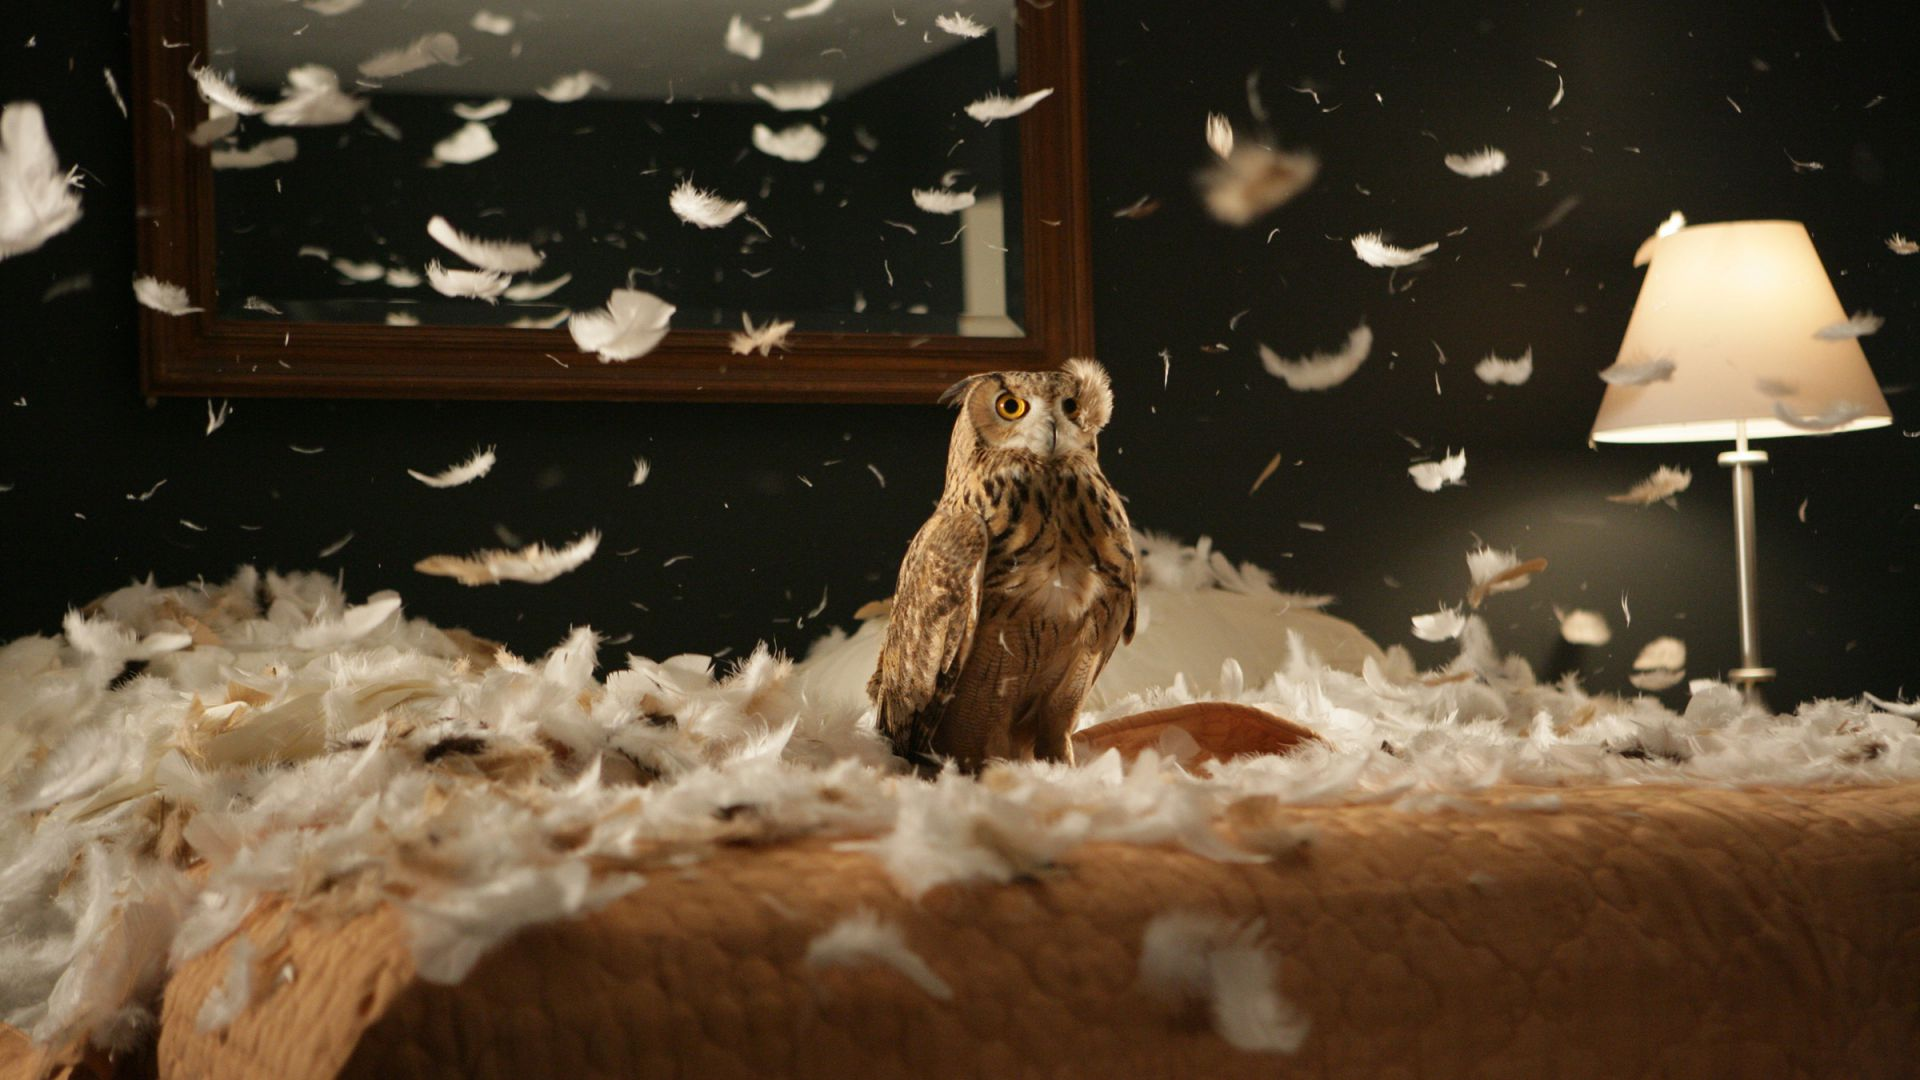 Owl, feathers, cute animals, funny (horizontal)